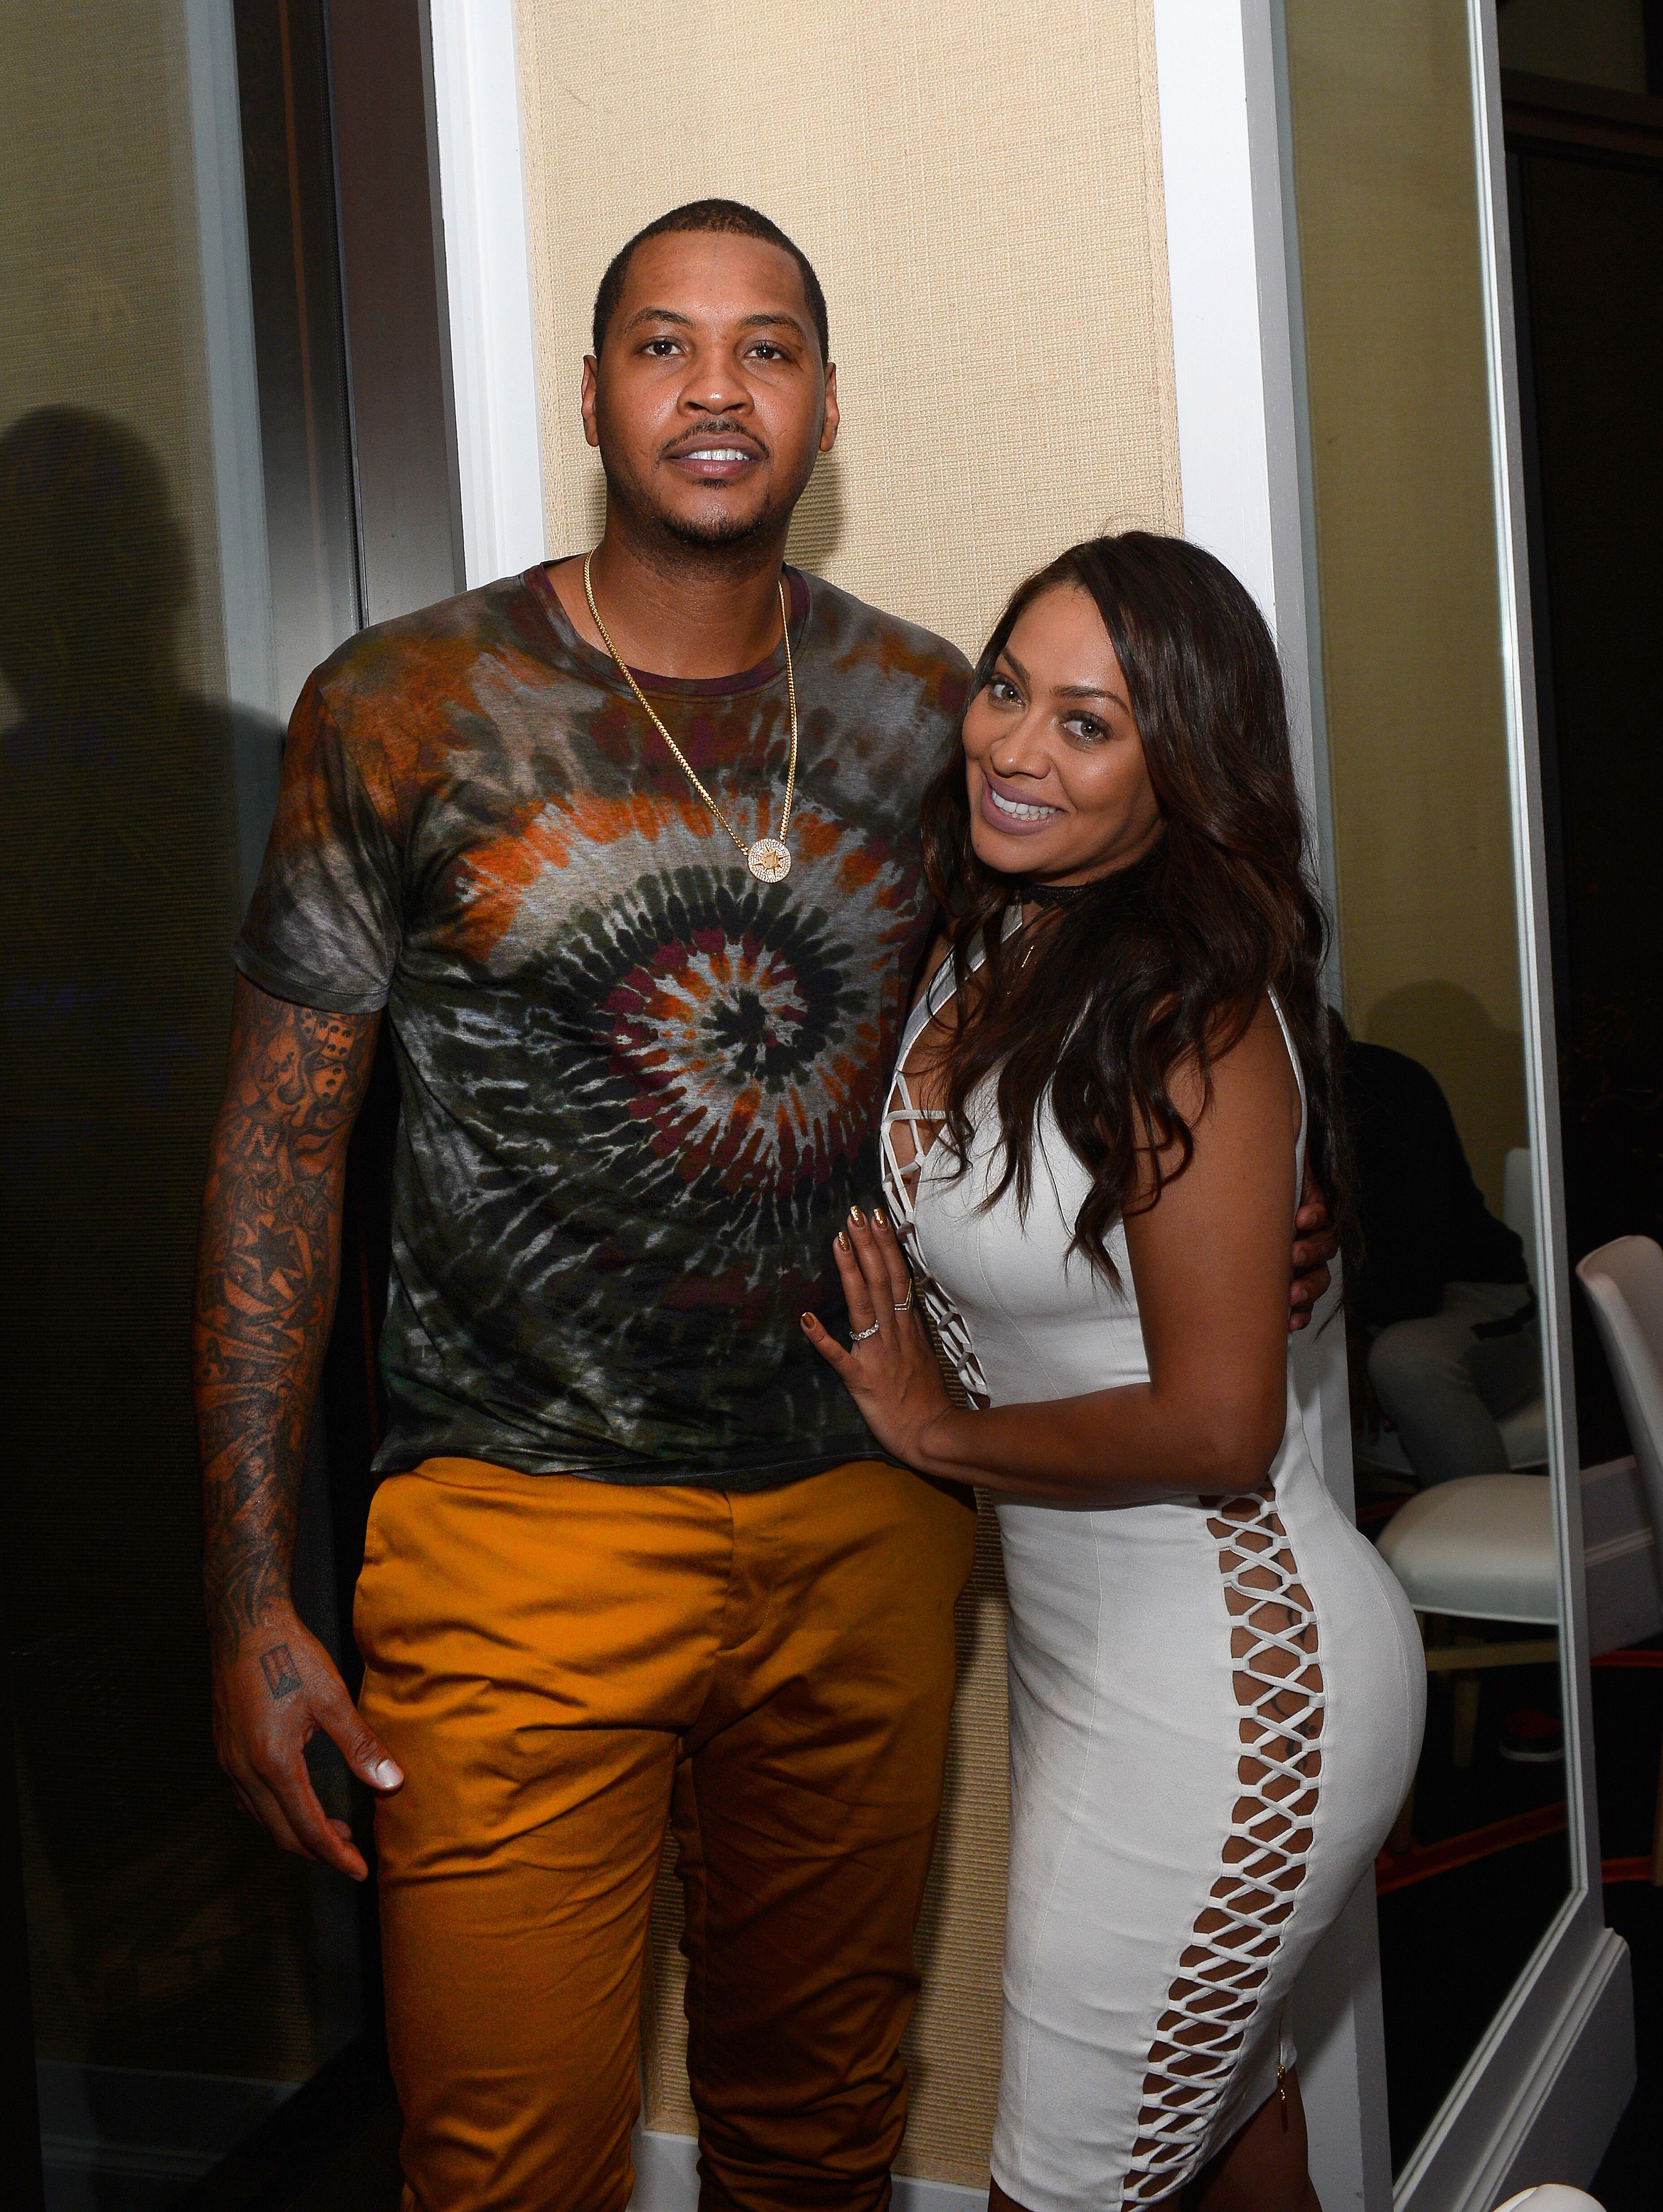 Carmelo Anthony and La La Anthony attend as he hosts the Team USA welcome dinner at Lakeside at Wynn Las Vegas on July 17, 2016 in Las Vegas, Nevada. | Source: Getty Images